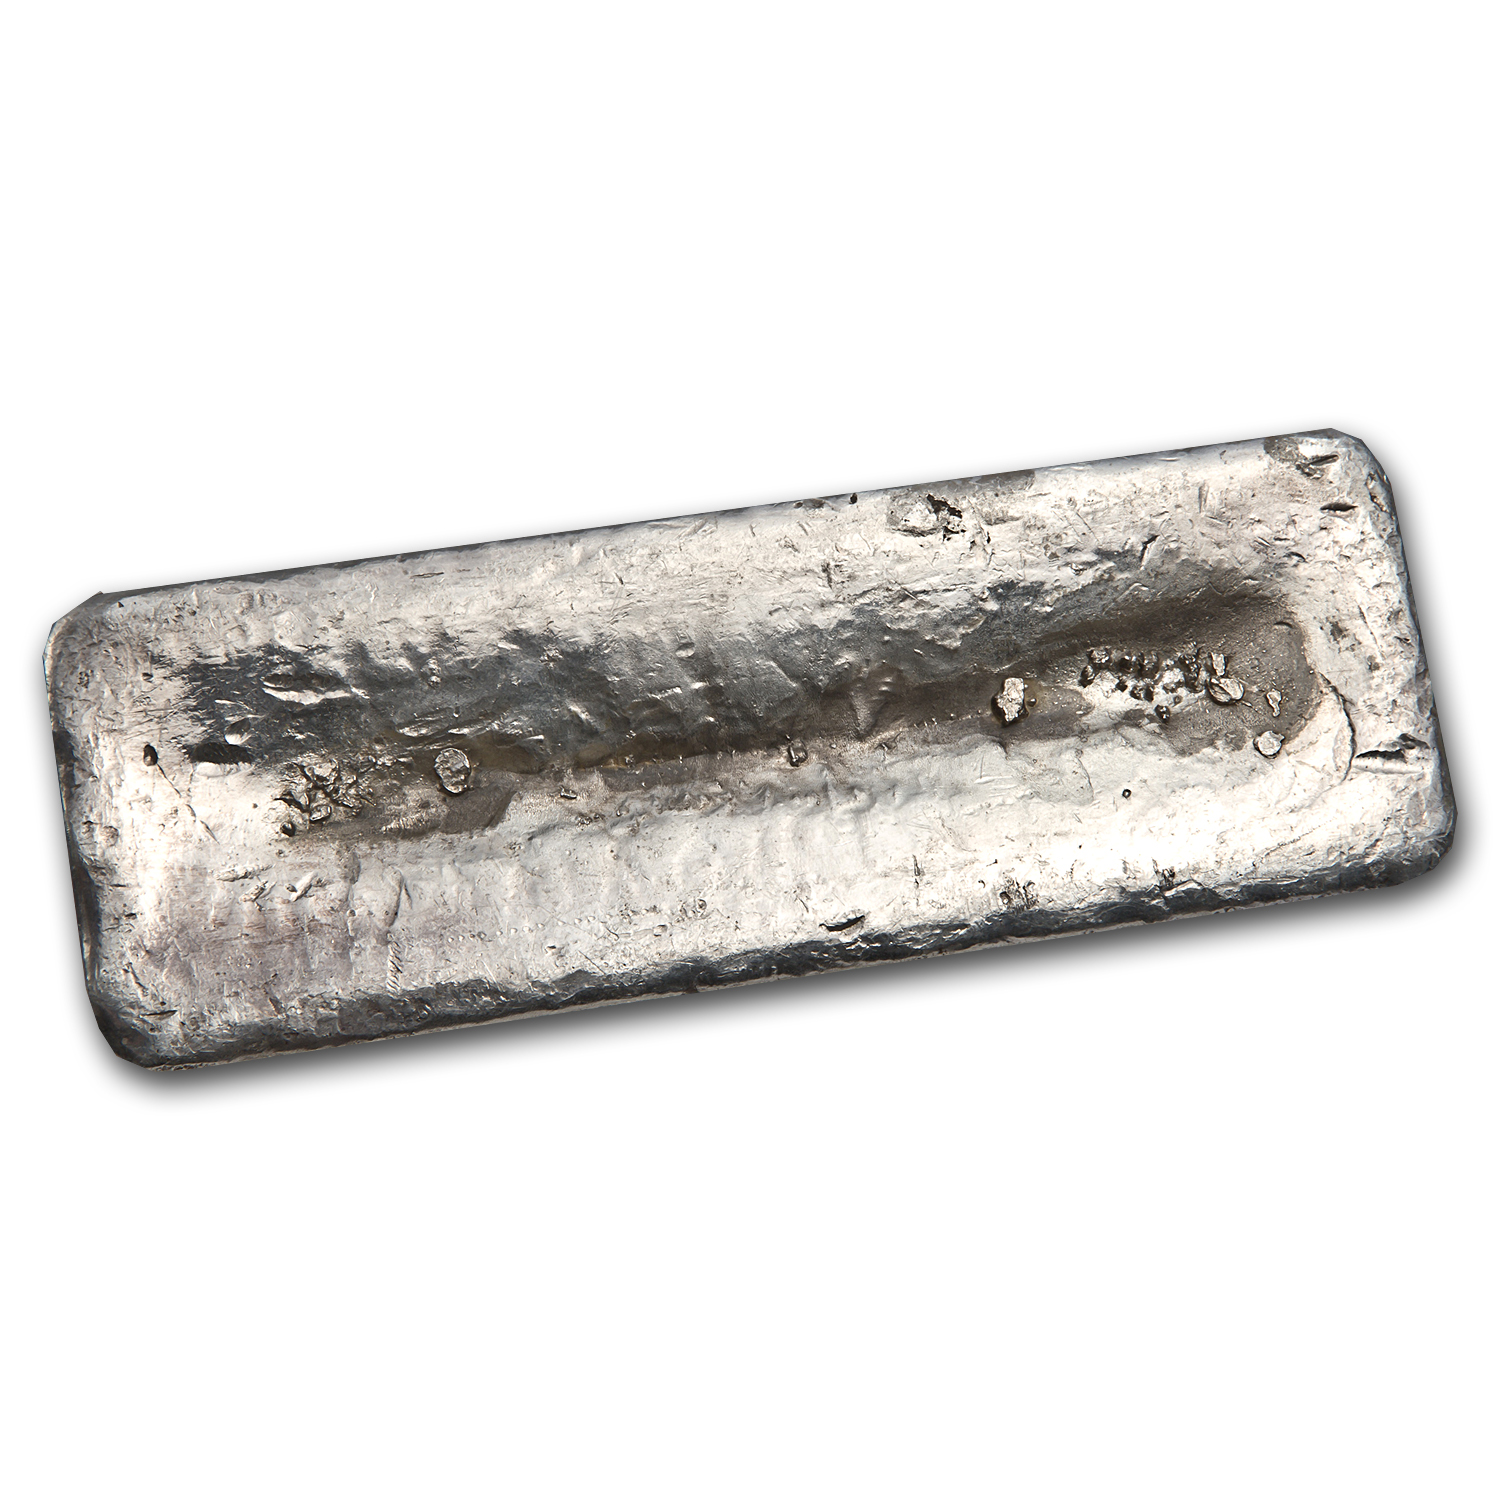 99.87 oz Silver Bar - Brown Materials